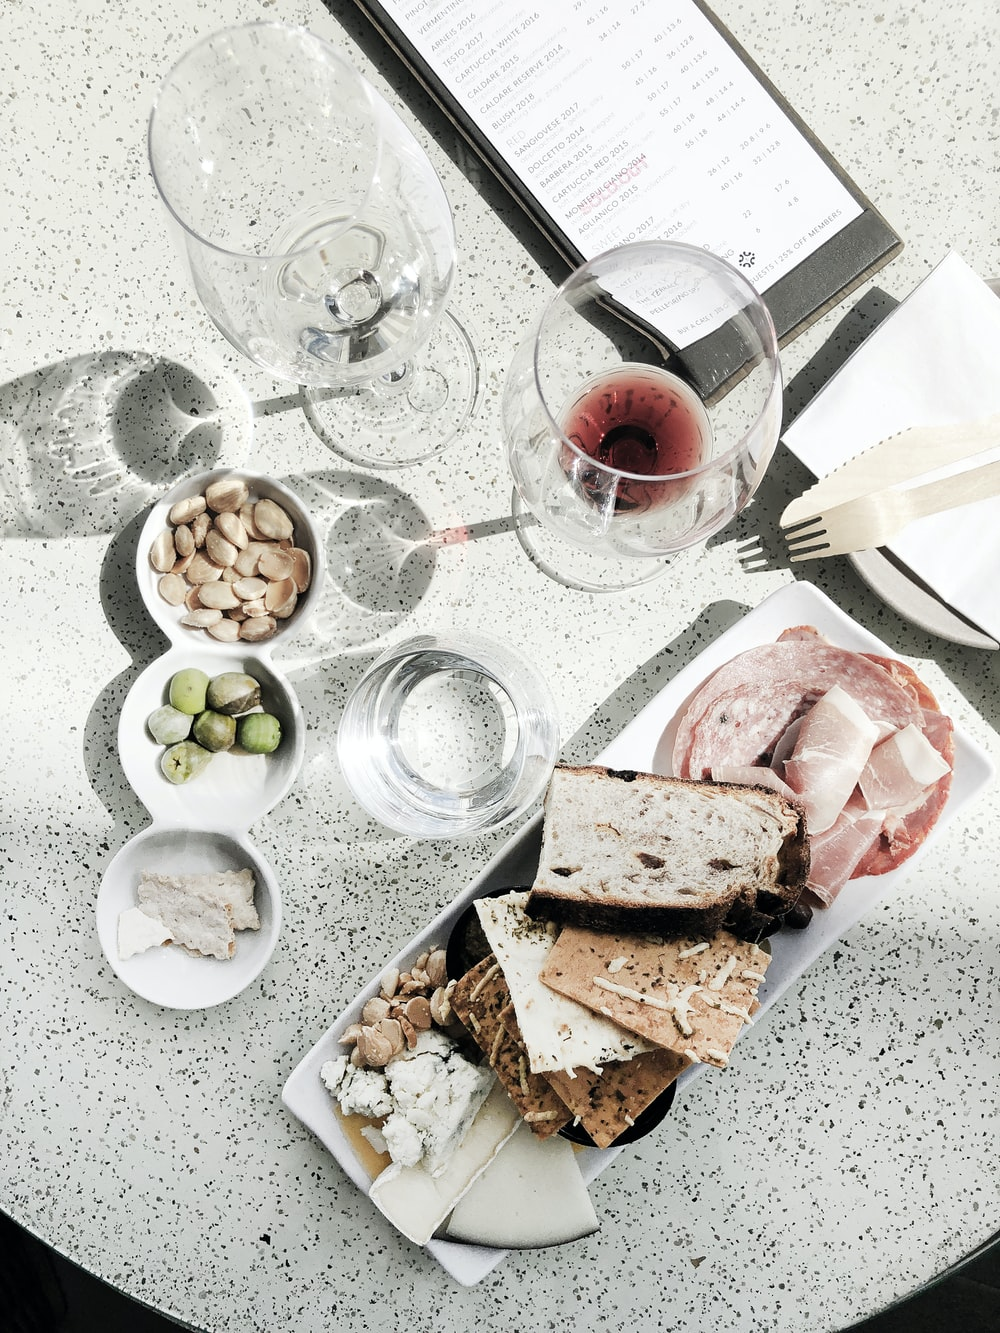 sliced bread on white ceramic plate beside clear wine glass